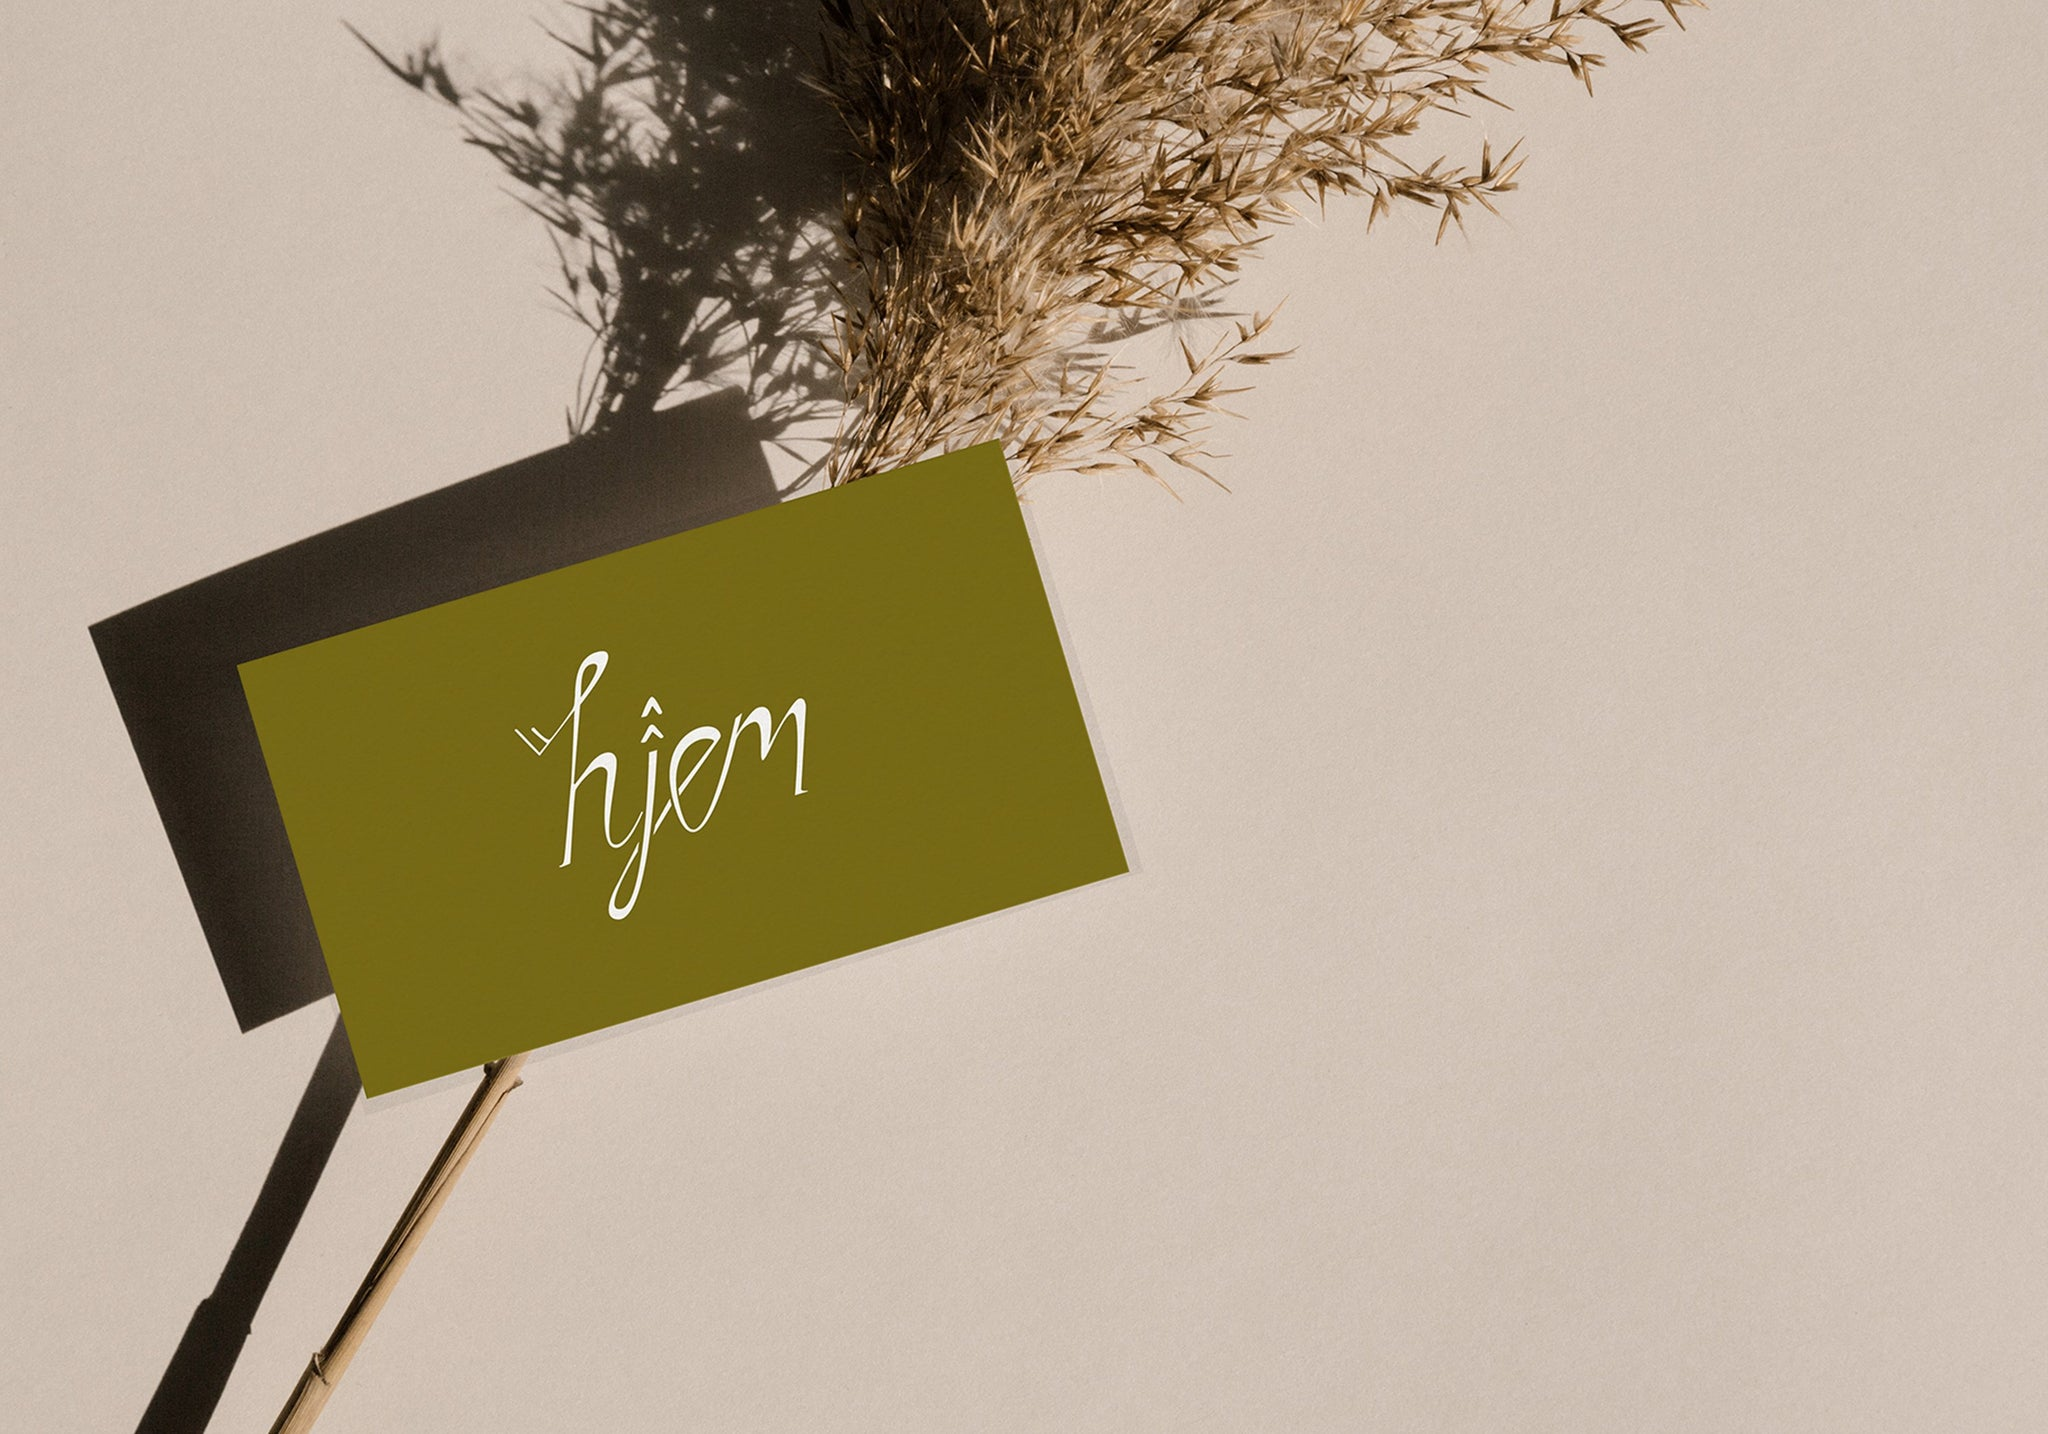 Hjem by Studio Seagraves